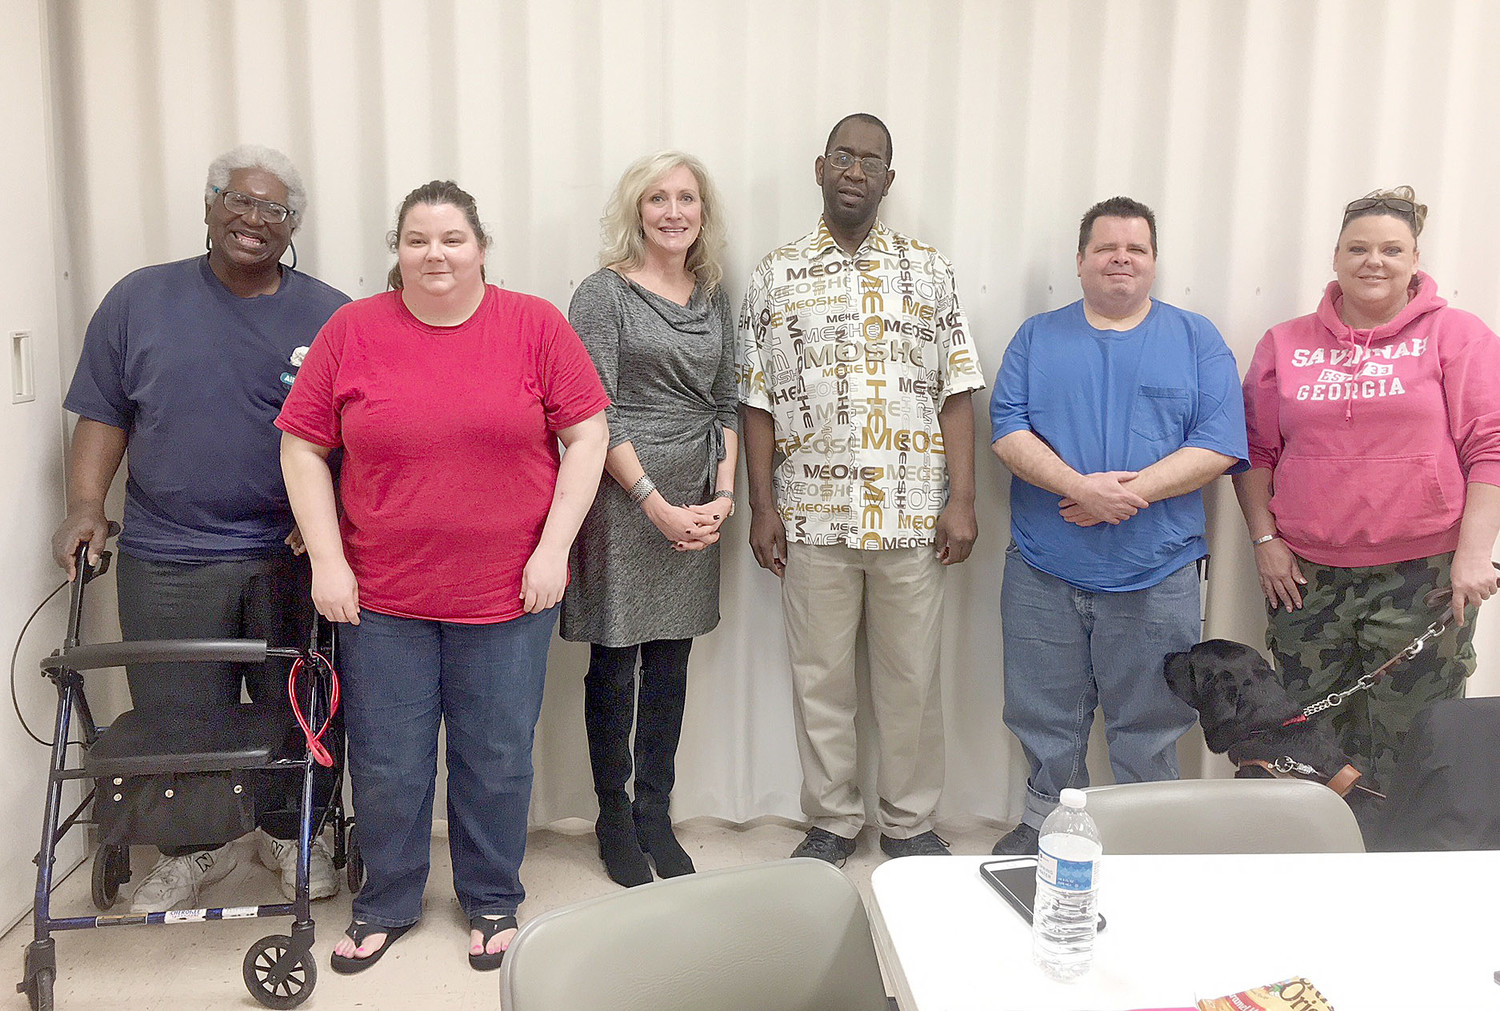 The Southeast Chapter of the National Federation of the Blind hosted a guest speaker who discussed a sleep disorder known as Non-24 Hour. Pictured from left to right include: Faheem Bengazi, vice president; Christy O'Dell, president; Wendy Osteen, guest speaker; Jacki Holmes; Joe McDonald; Sharon Warren, secretary with her guide dog, Avery.